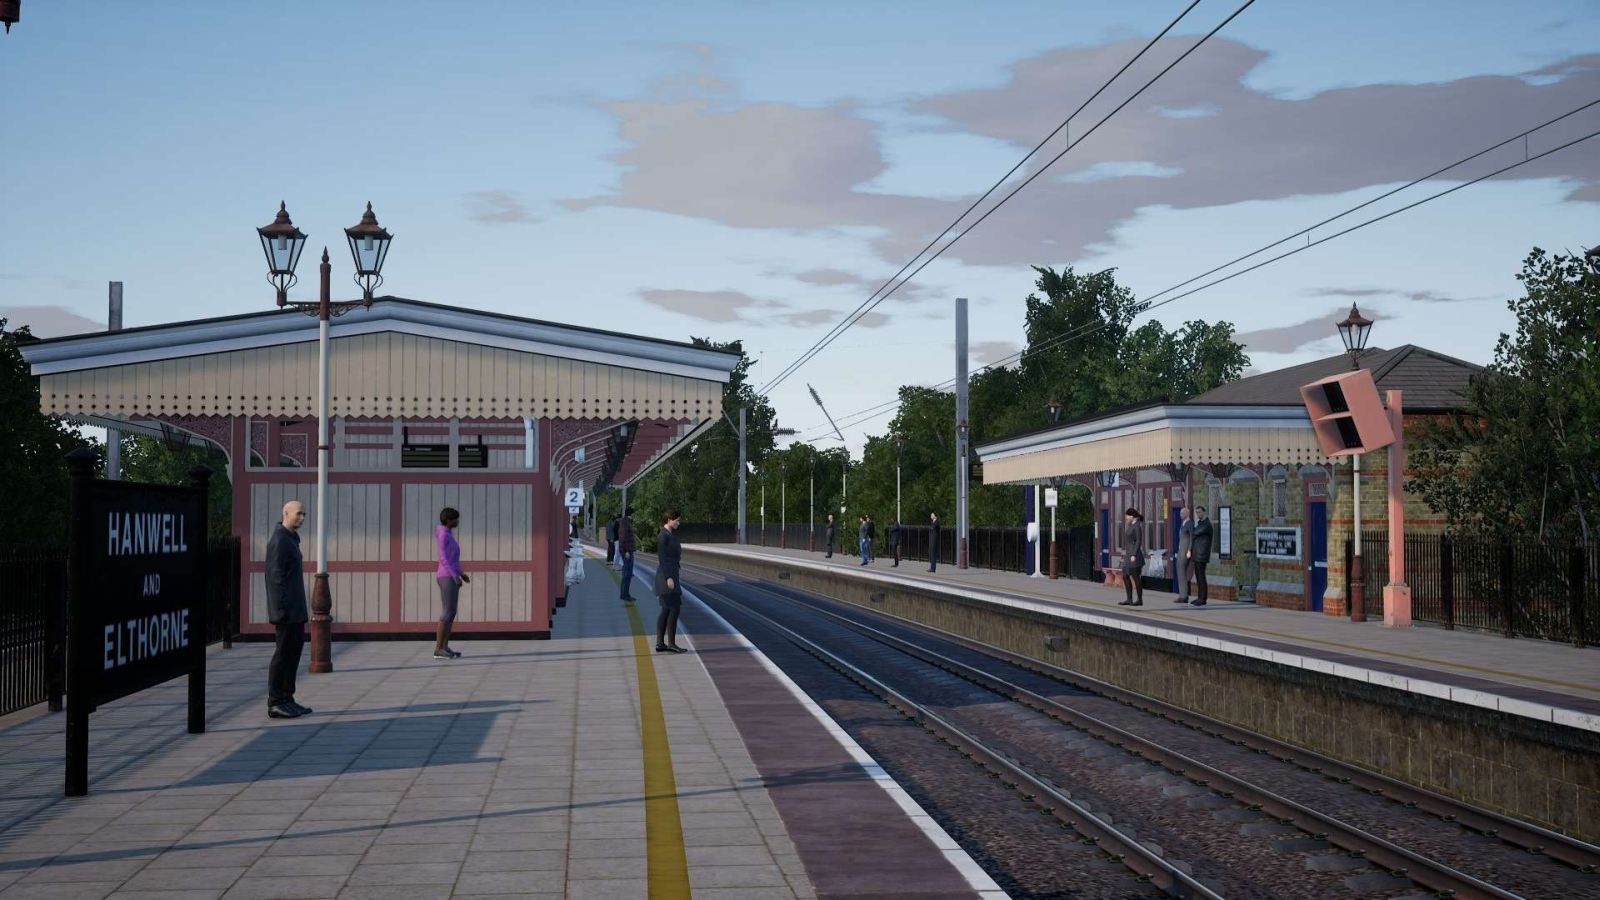 HanwellStation